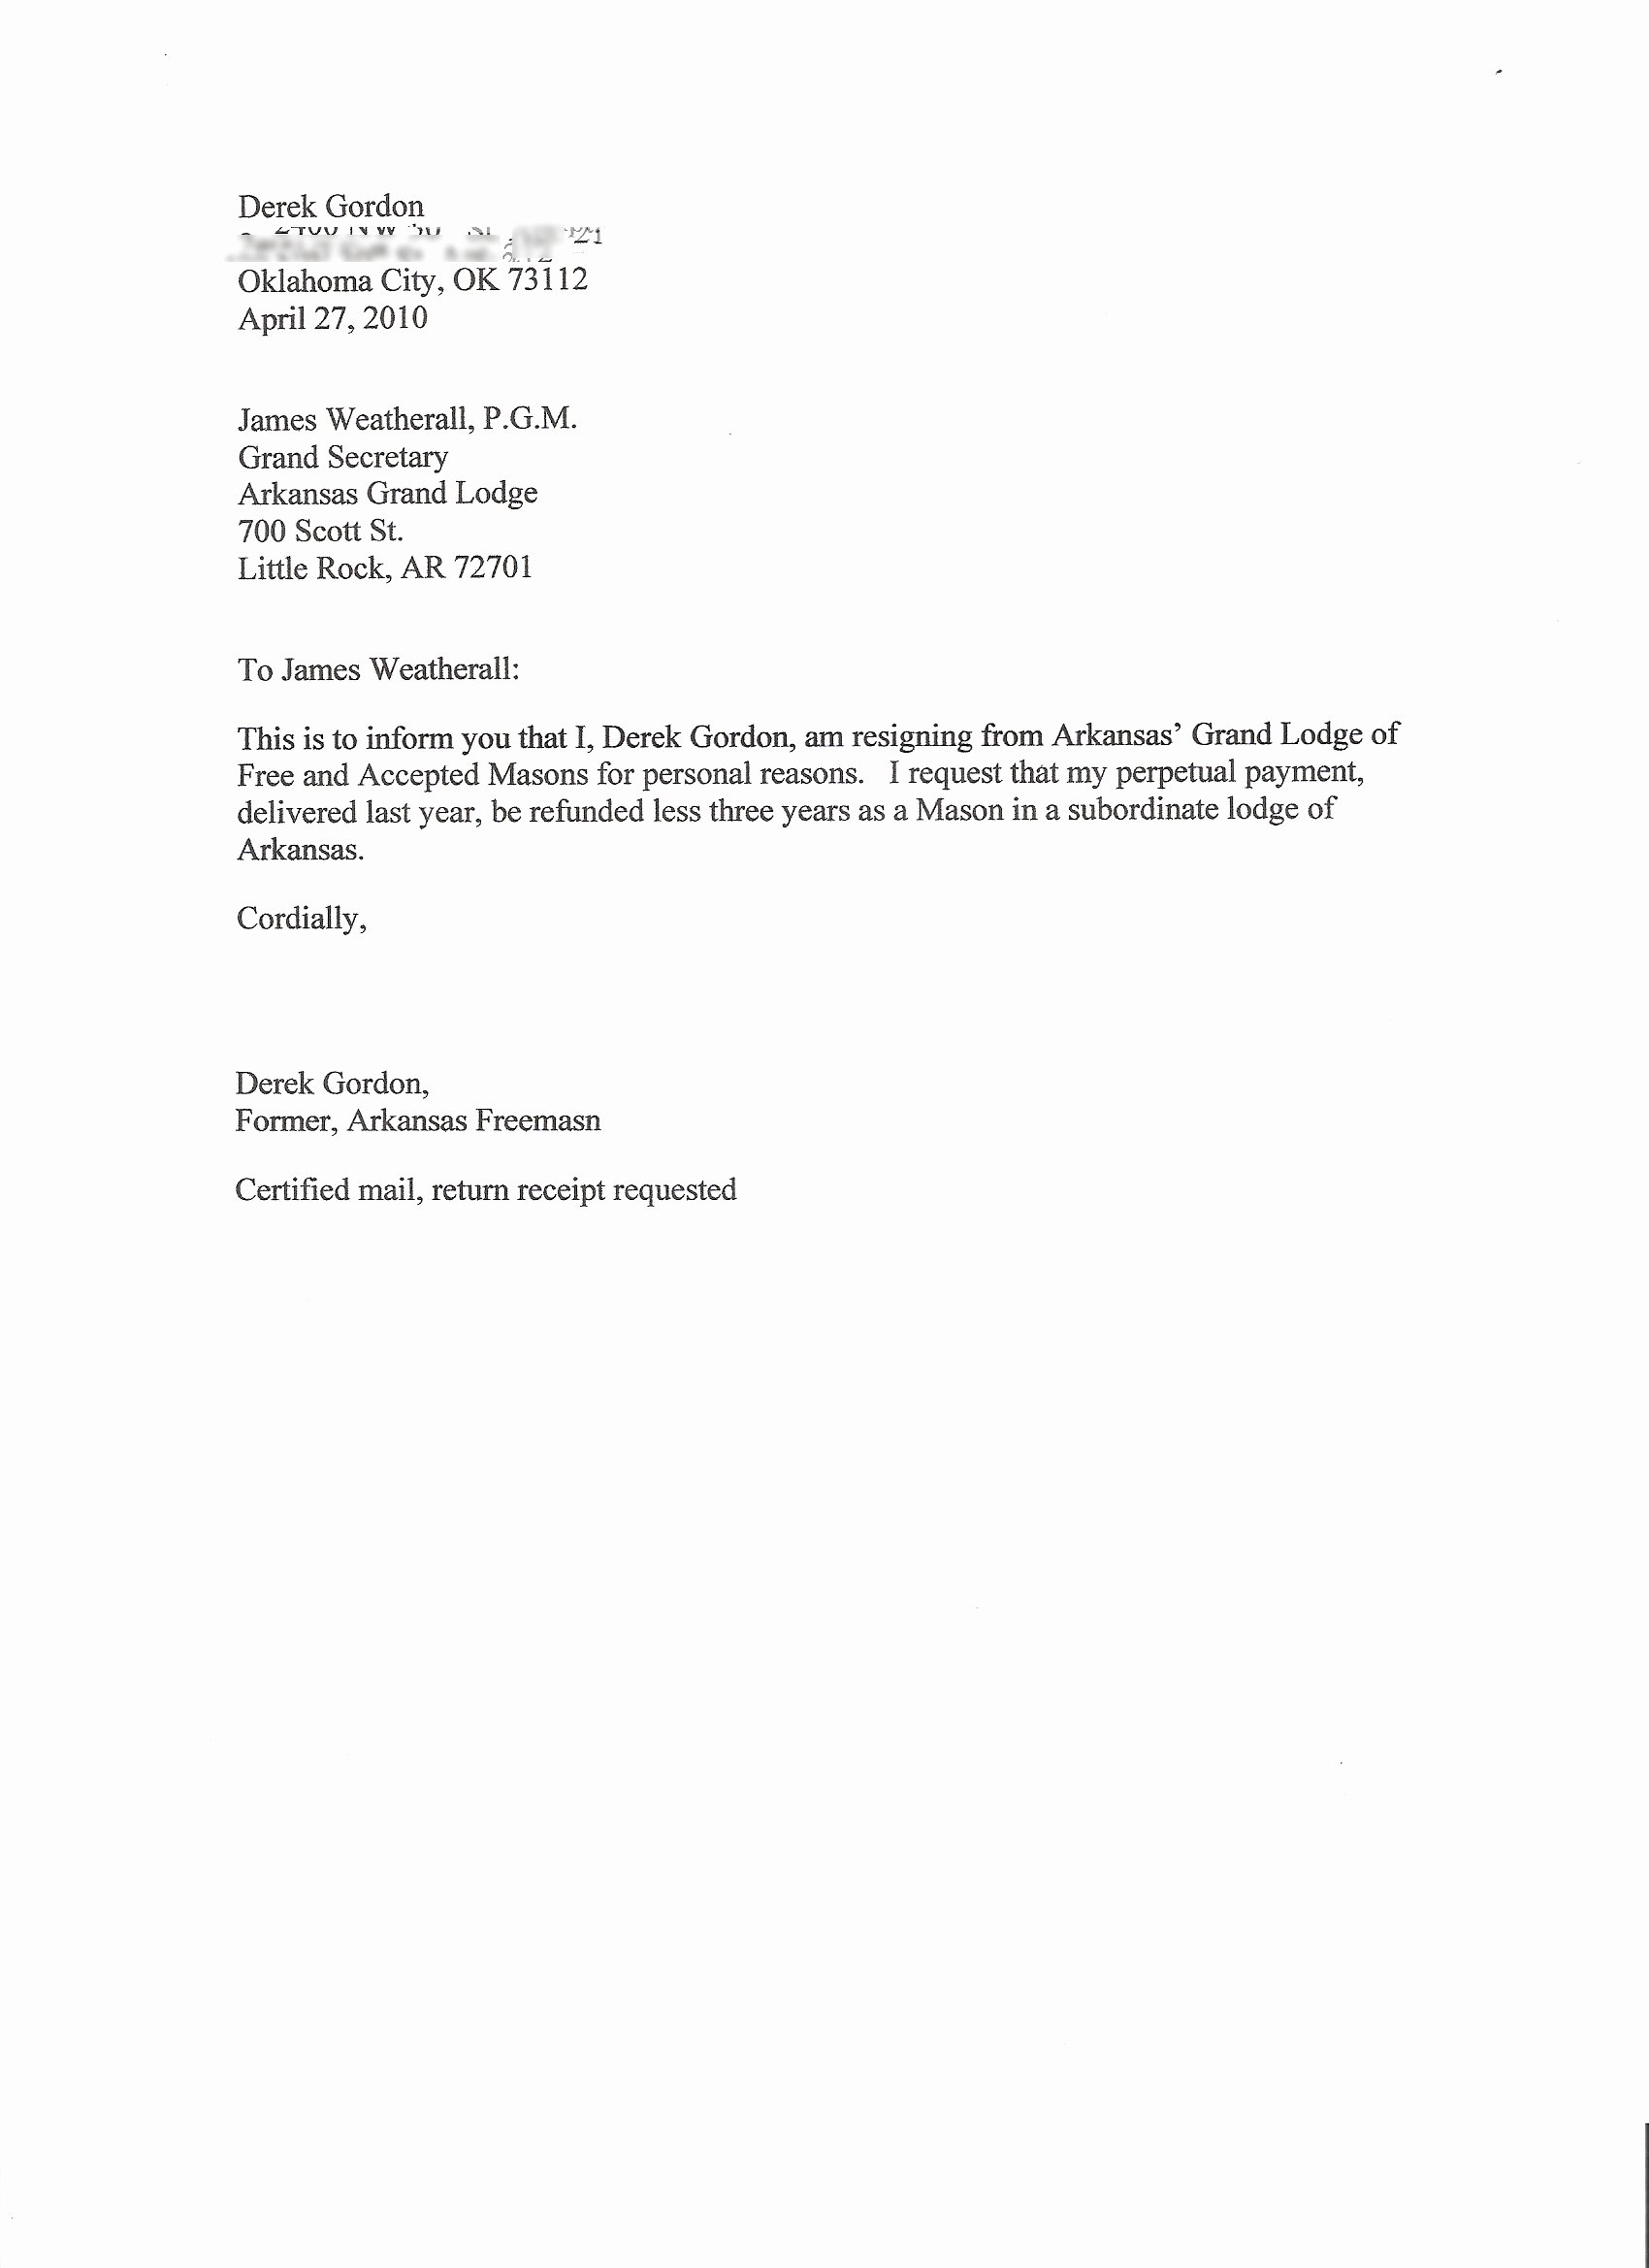 Resignation Letter Template Free Awesome Download Resignation Letters Pdf & Doc